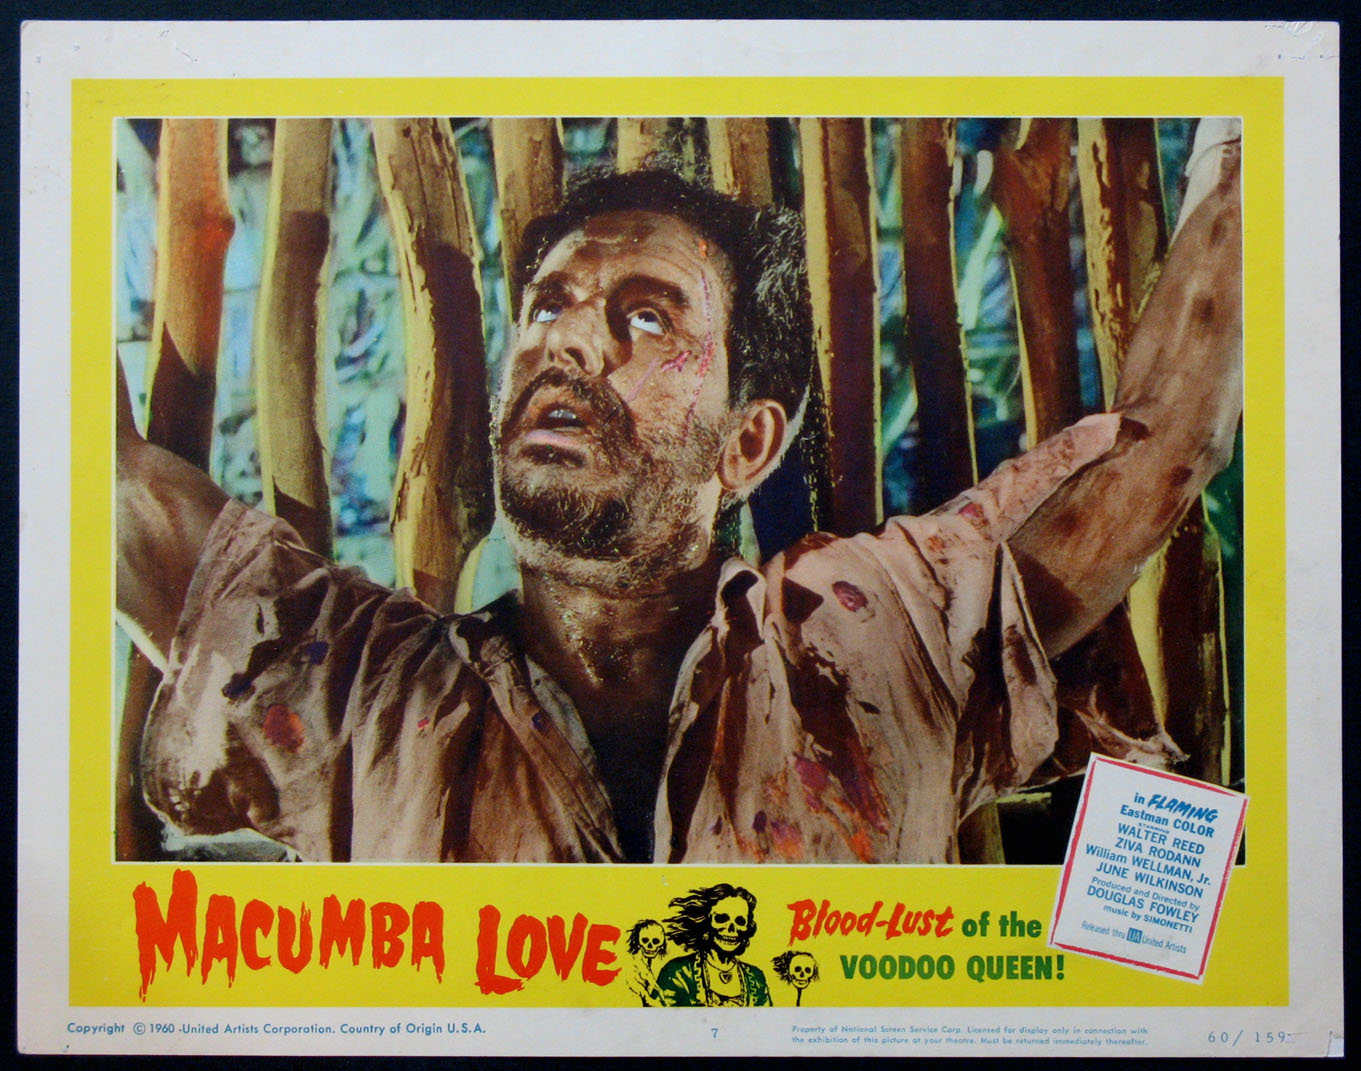 MACUMBA LOVE @ FilmPosters.com